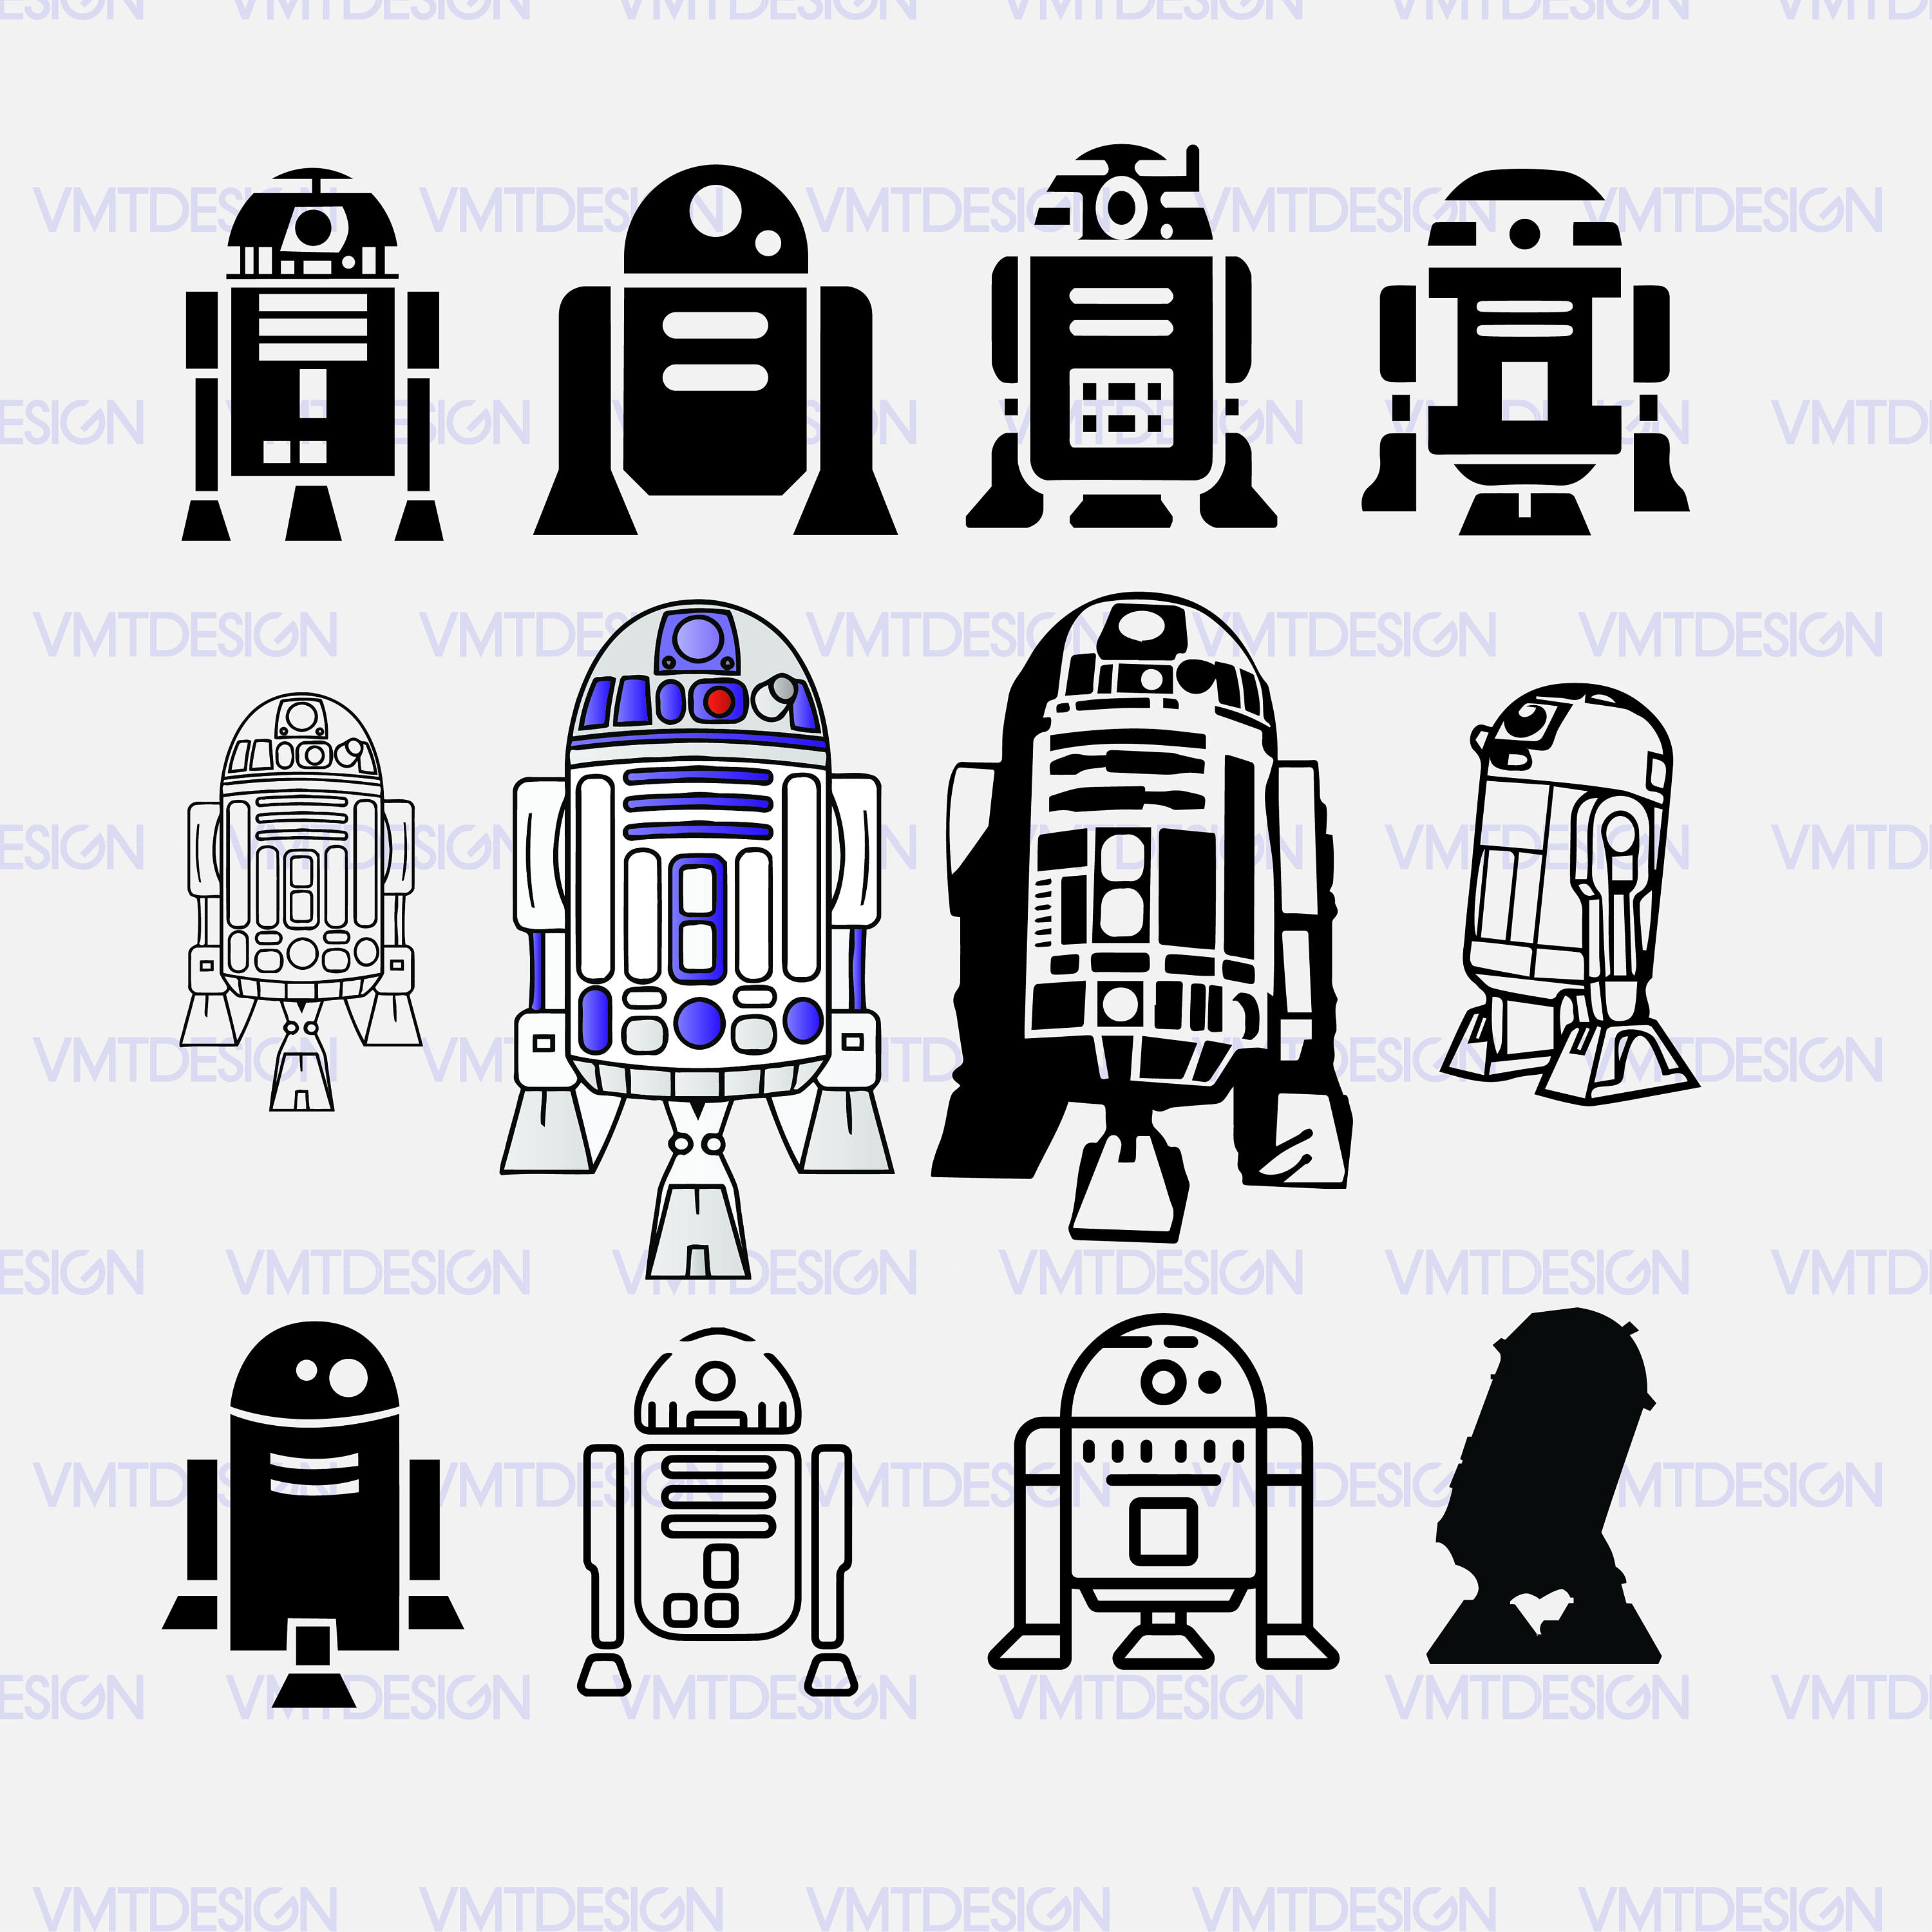 R d svg vector. R2d2 clipart r2 d2 picture royalty free stock